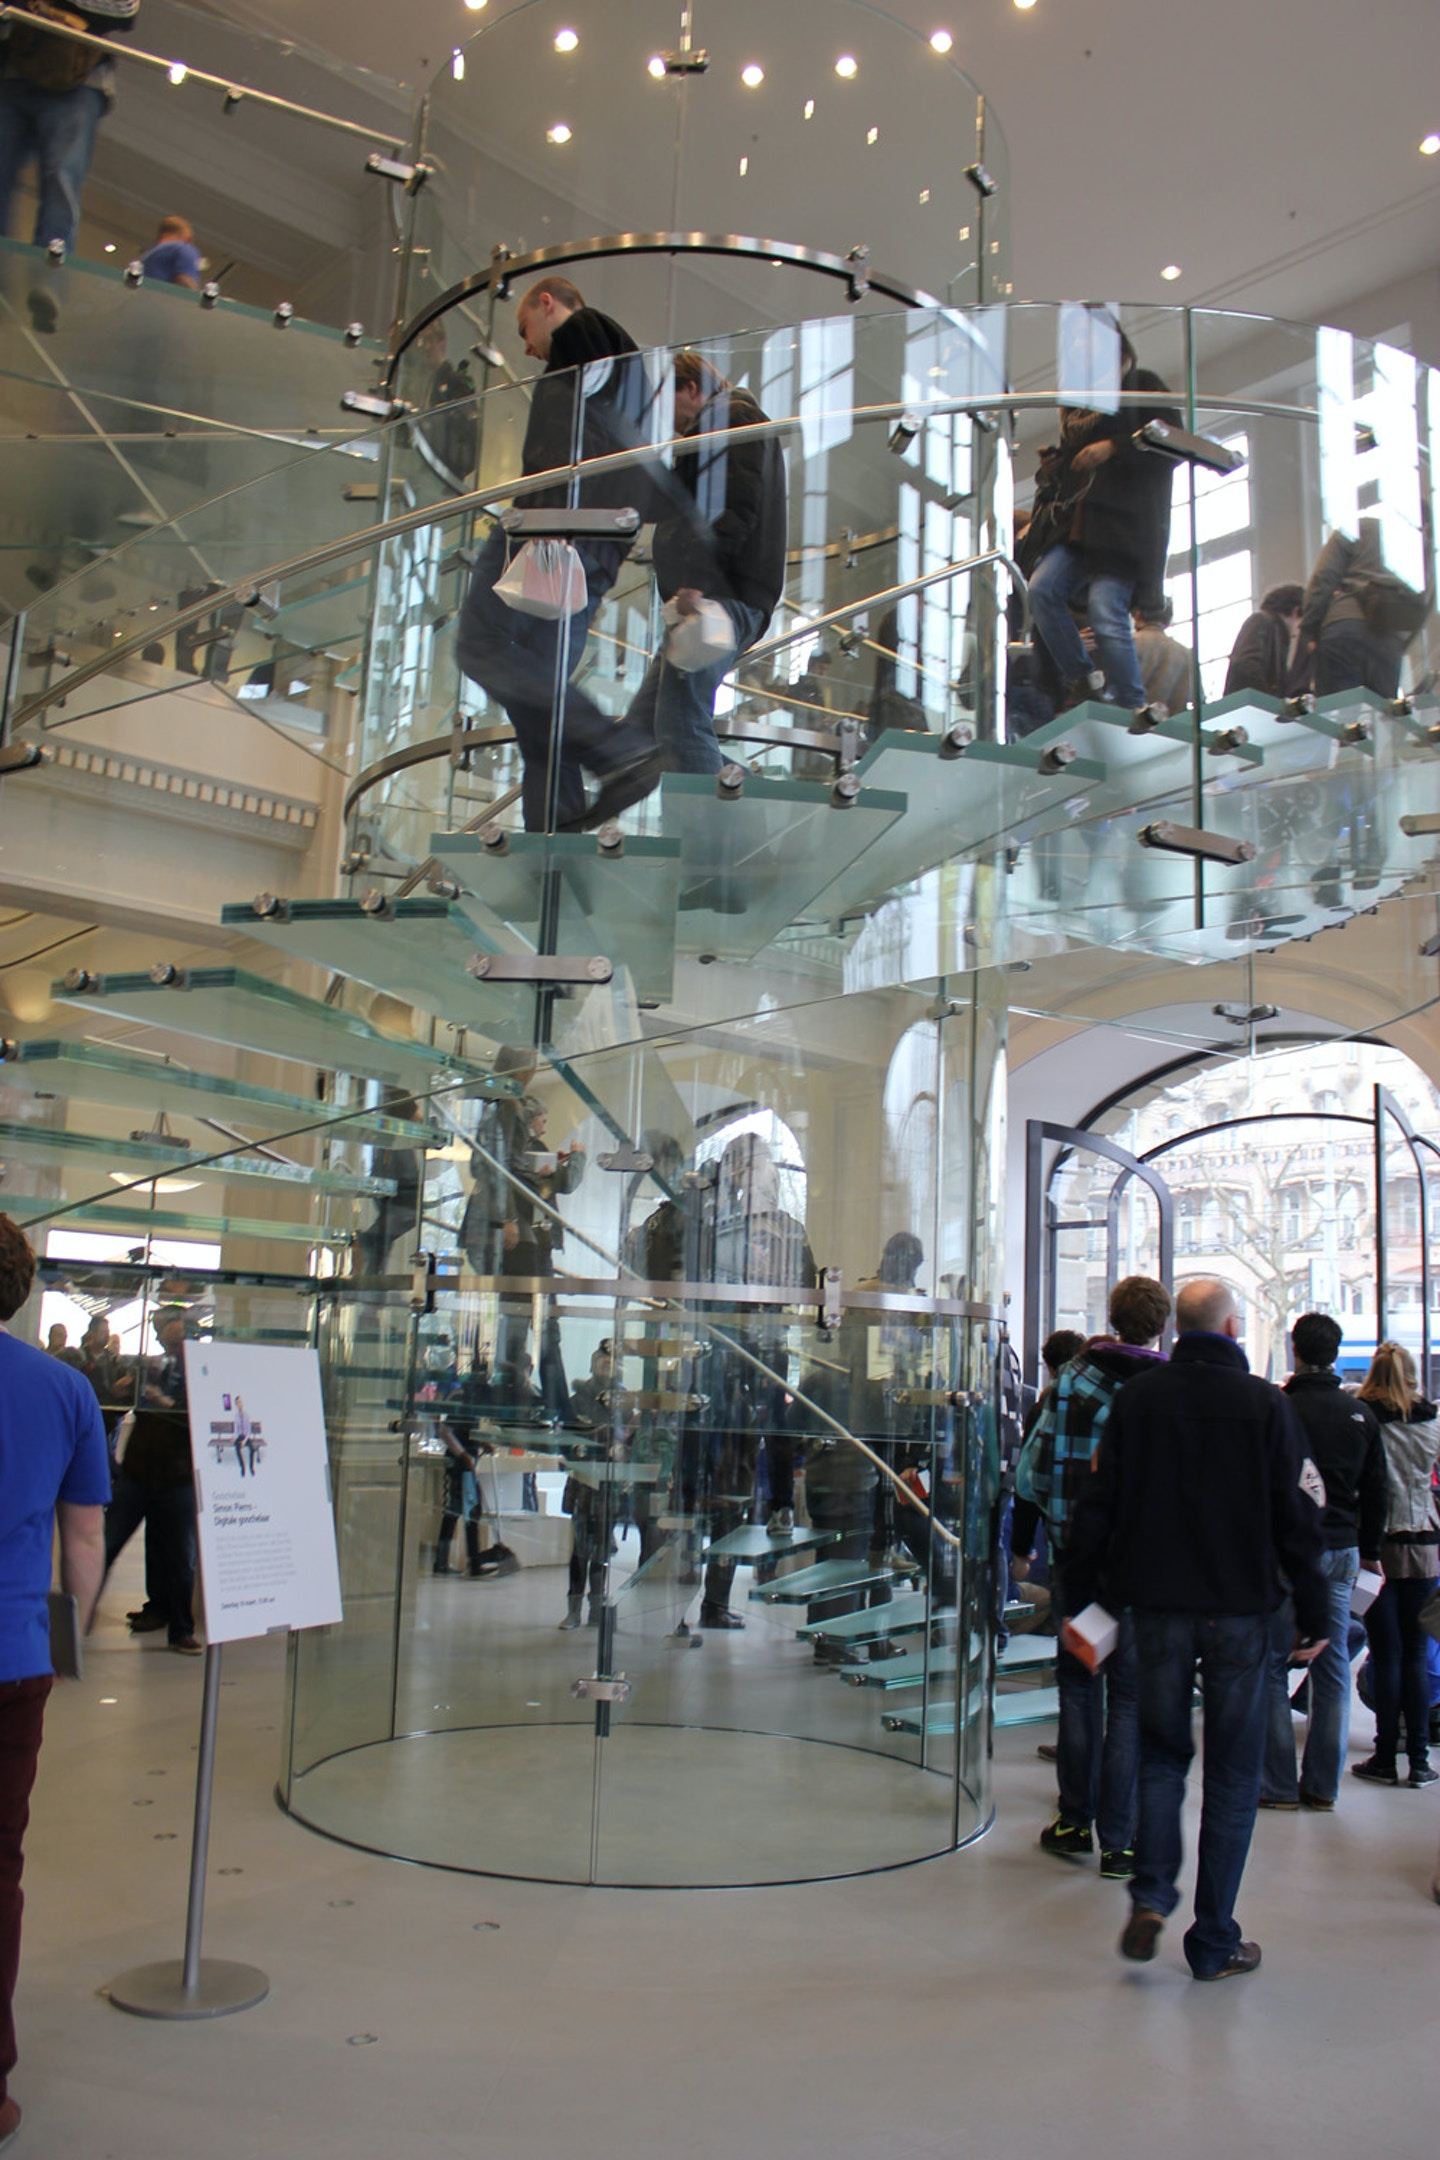 VIDEO: Inside the Apple Store Amsterdam